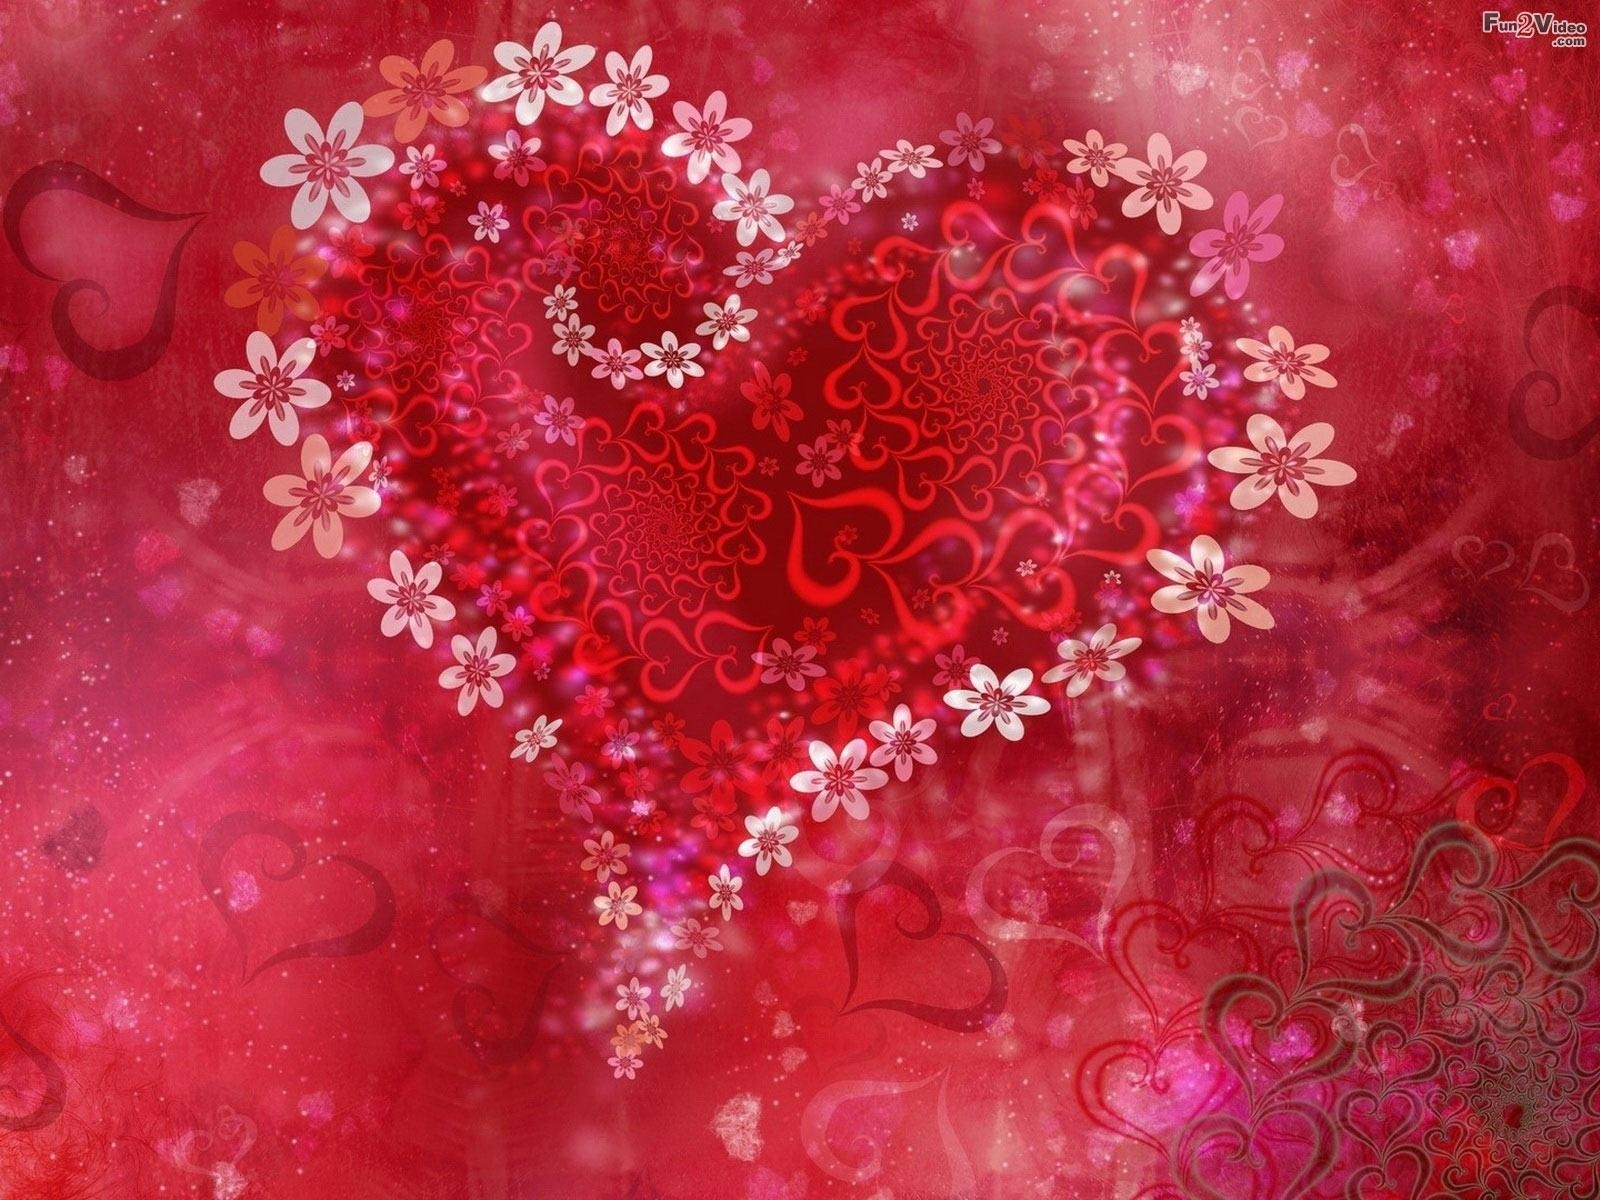 10 Latest Free Valentine Desktop Wallpaper FULL HD 1080p For PC Desktop